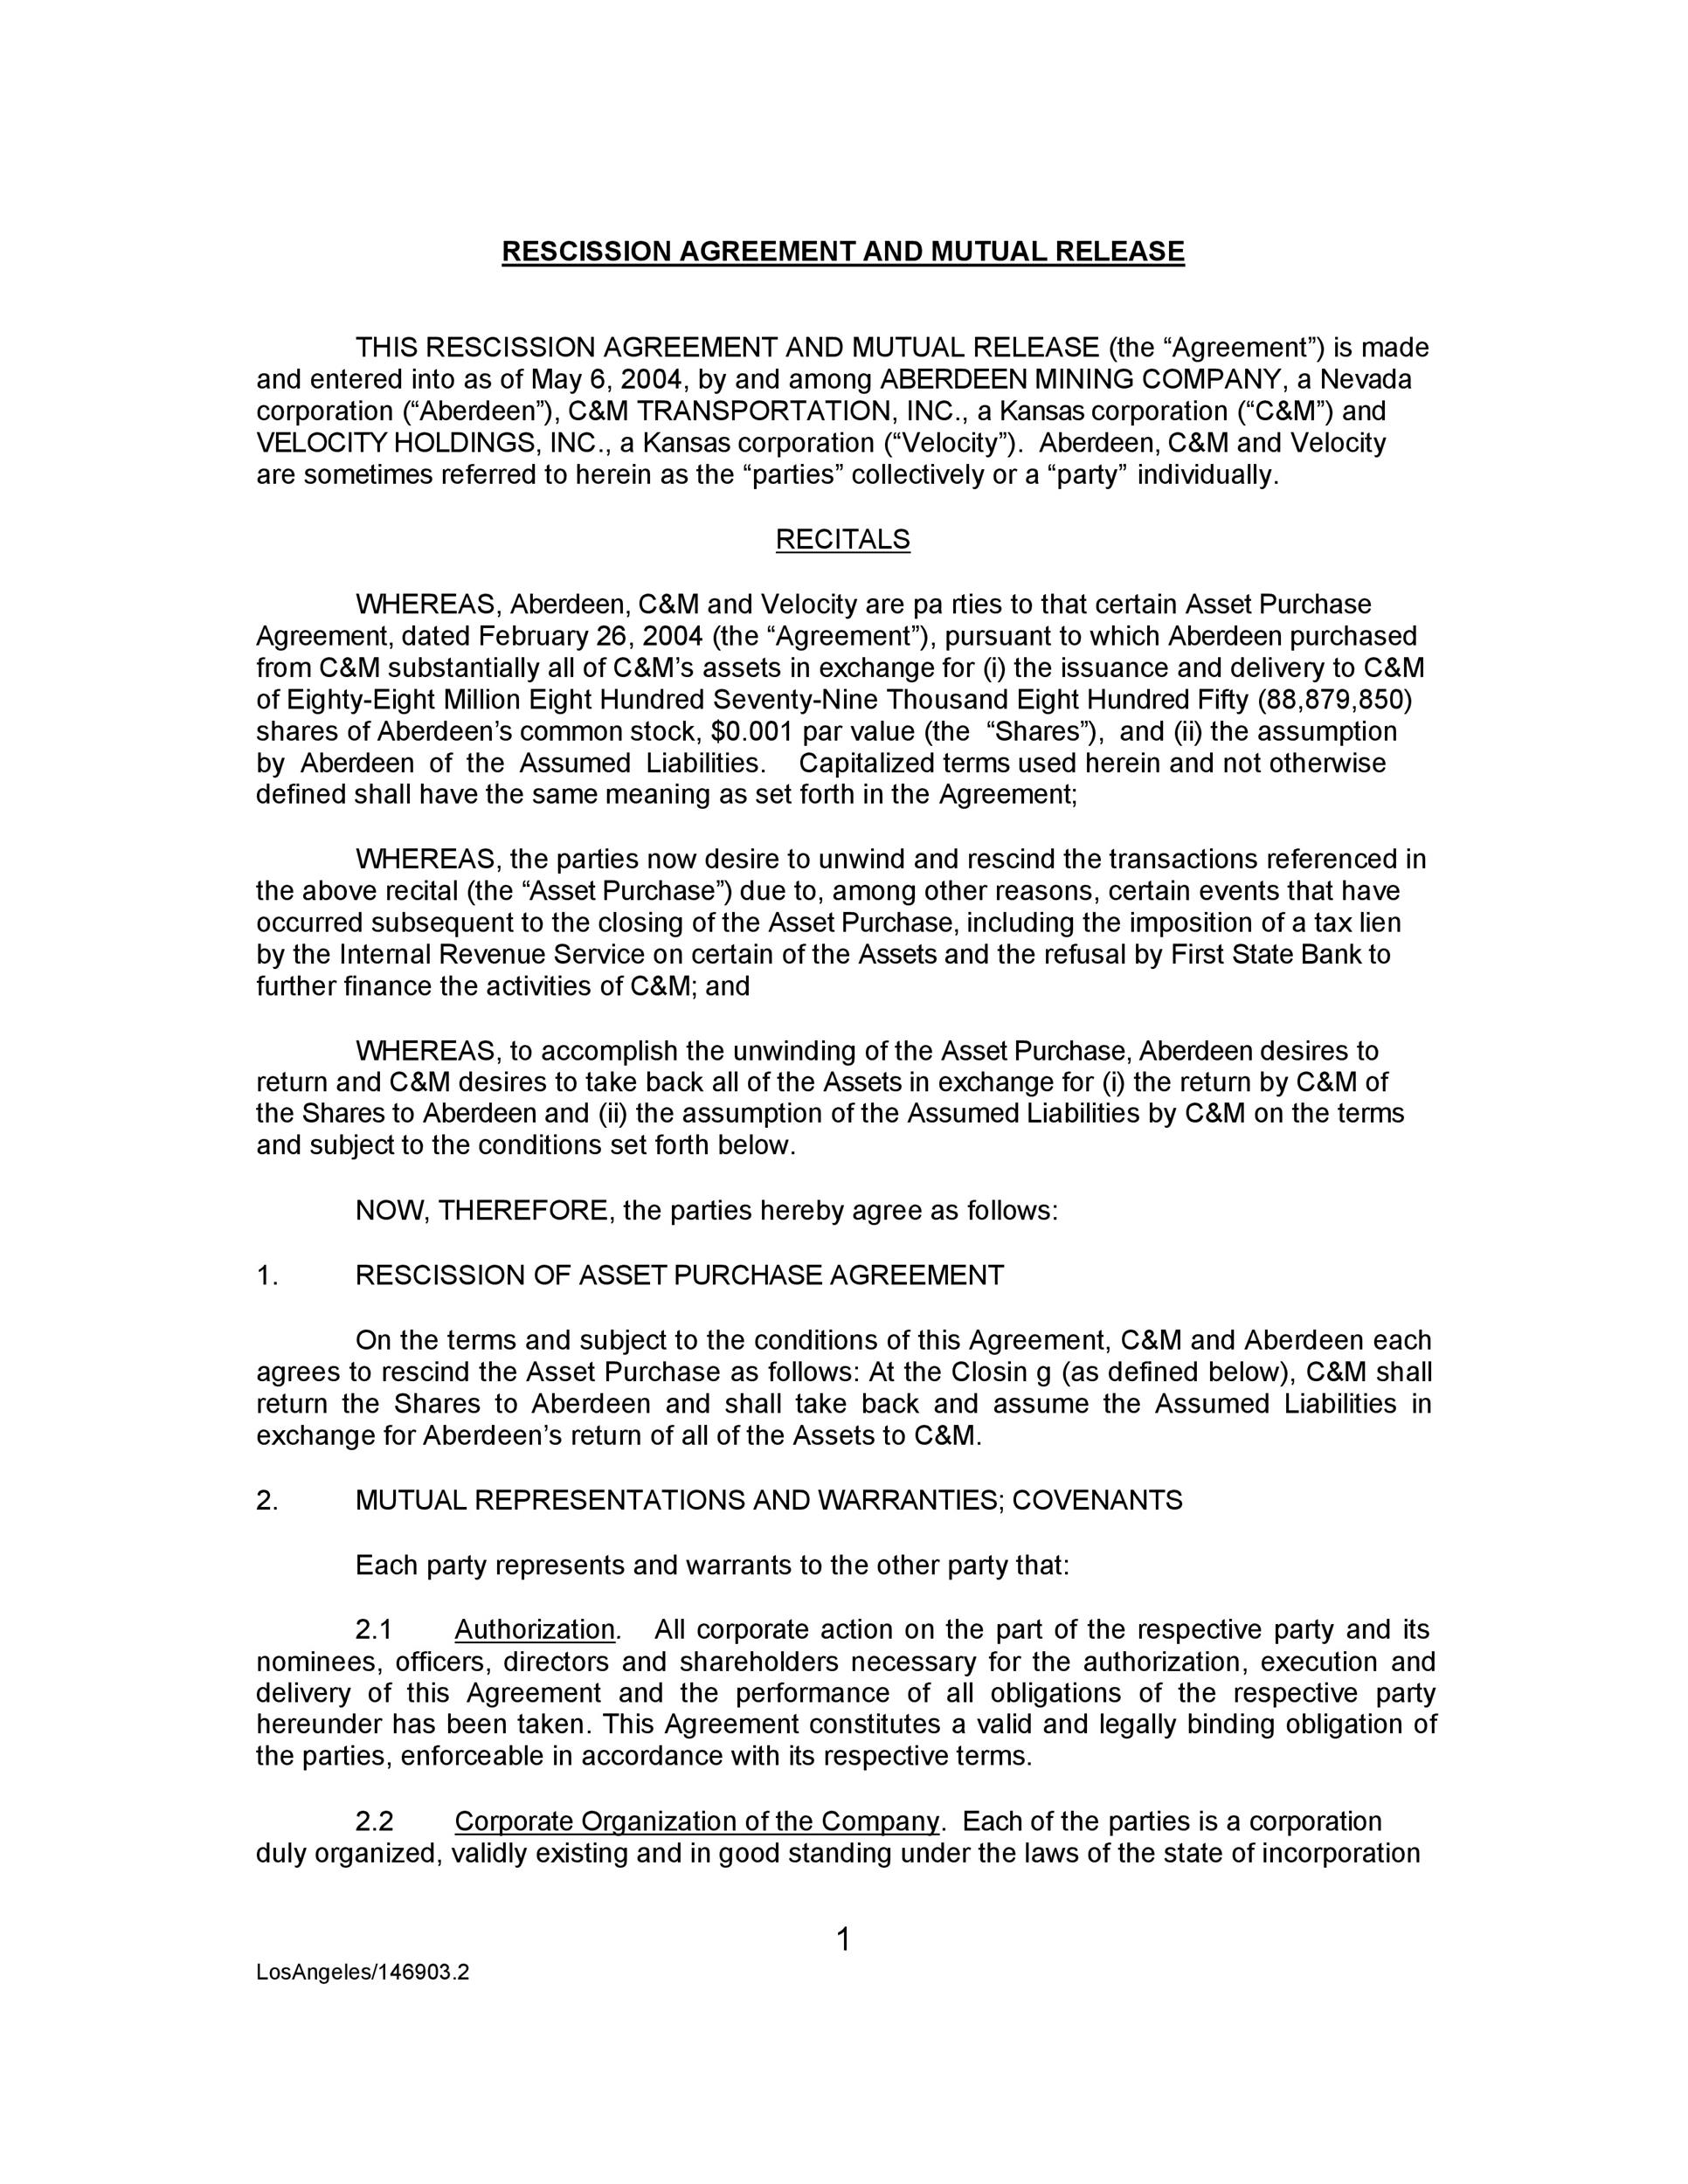 45 Useful Rescission Agreements (Free Templates) ᐅ Template Lab